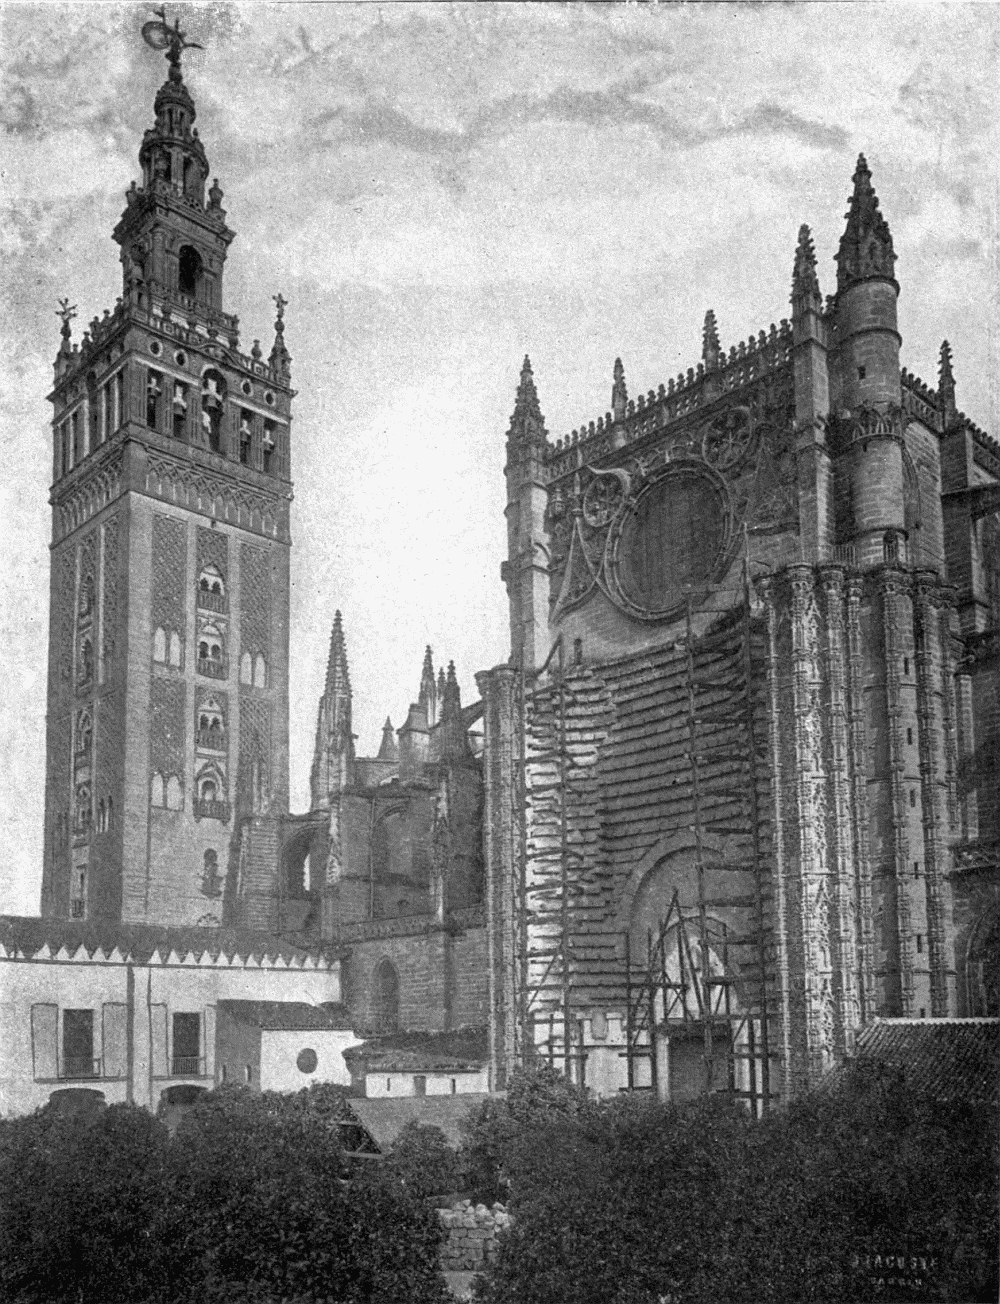 The project gutenberg ebook of cathedrals of spain by john a john cathedral of seville the giralda from the orange tree court fandeluxe Gallery